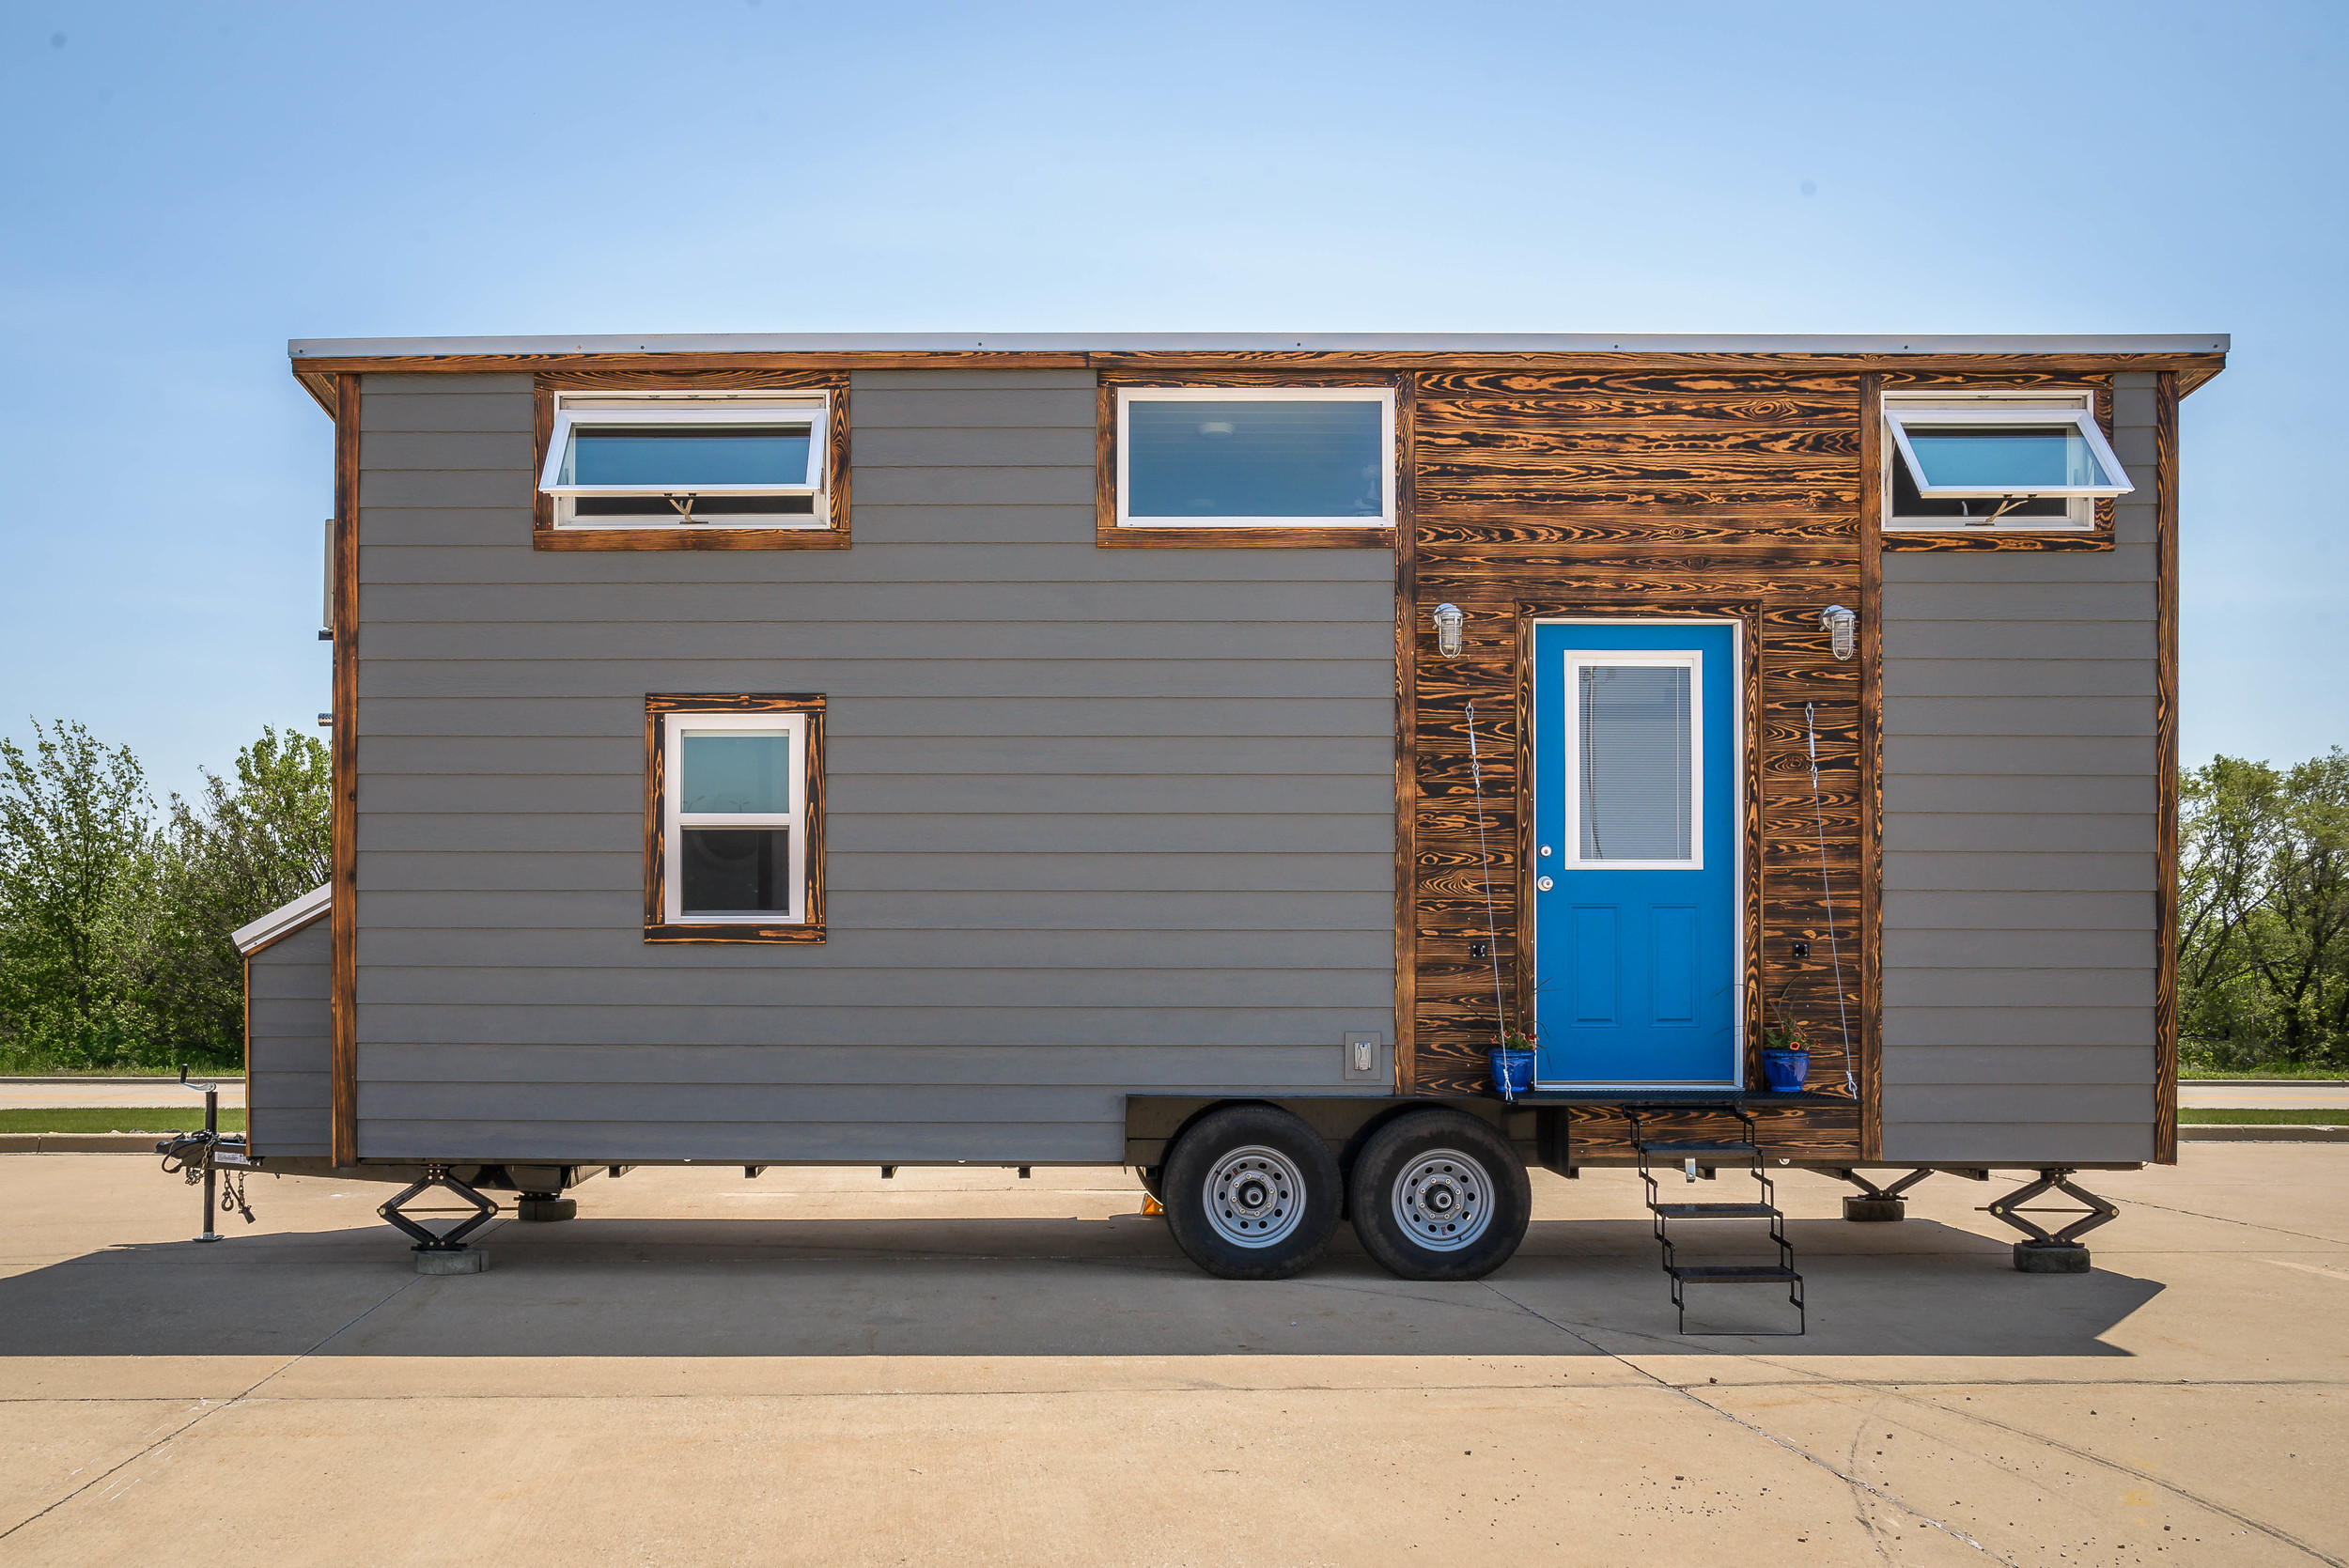 The Triton by Wind River Tiny Homes. Exterior with metal folding porch.